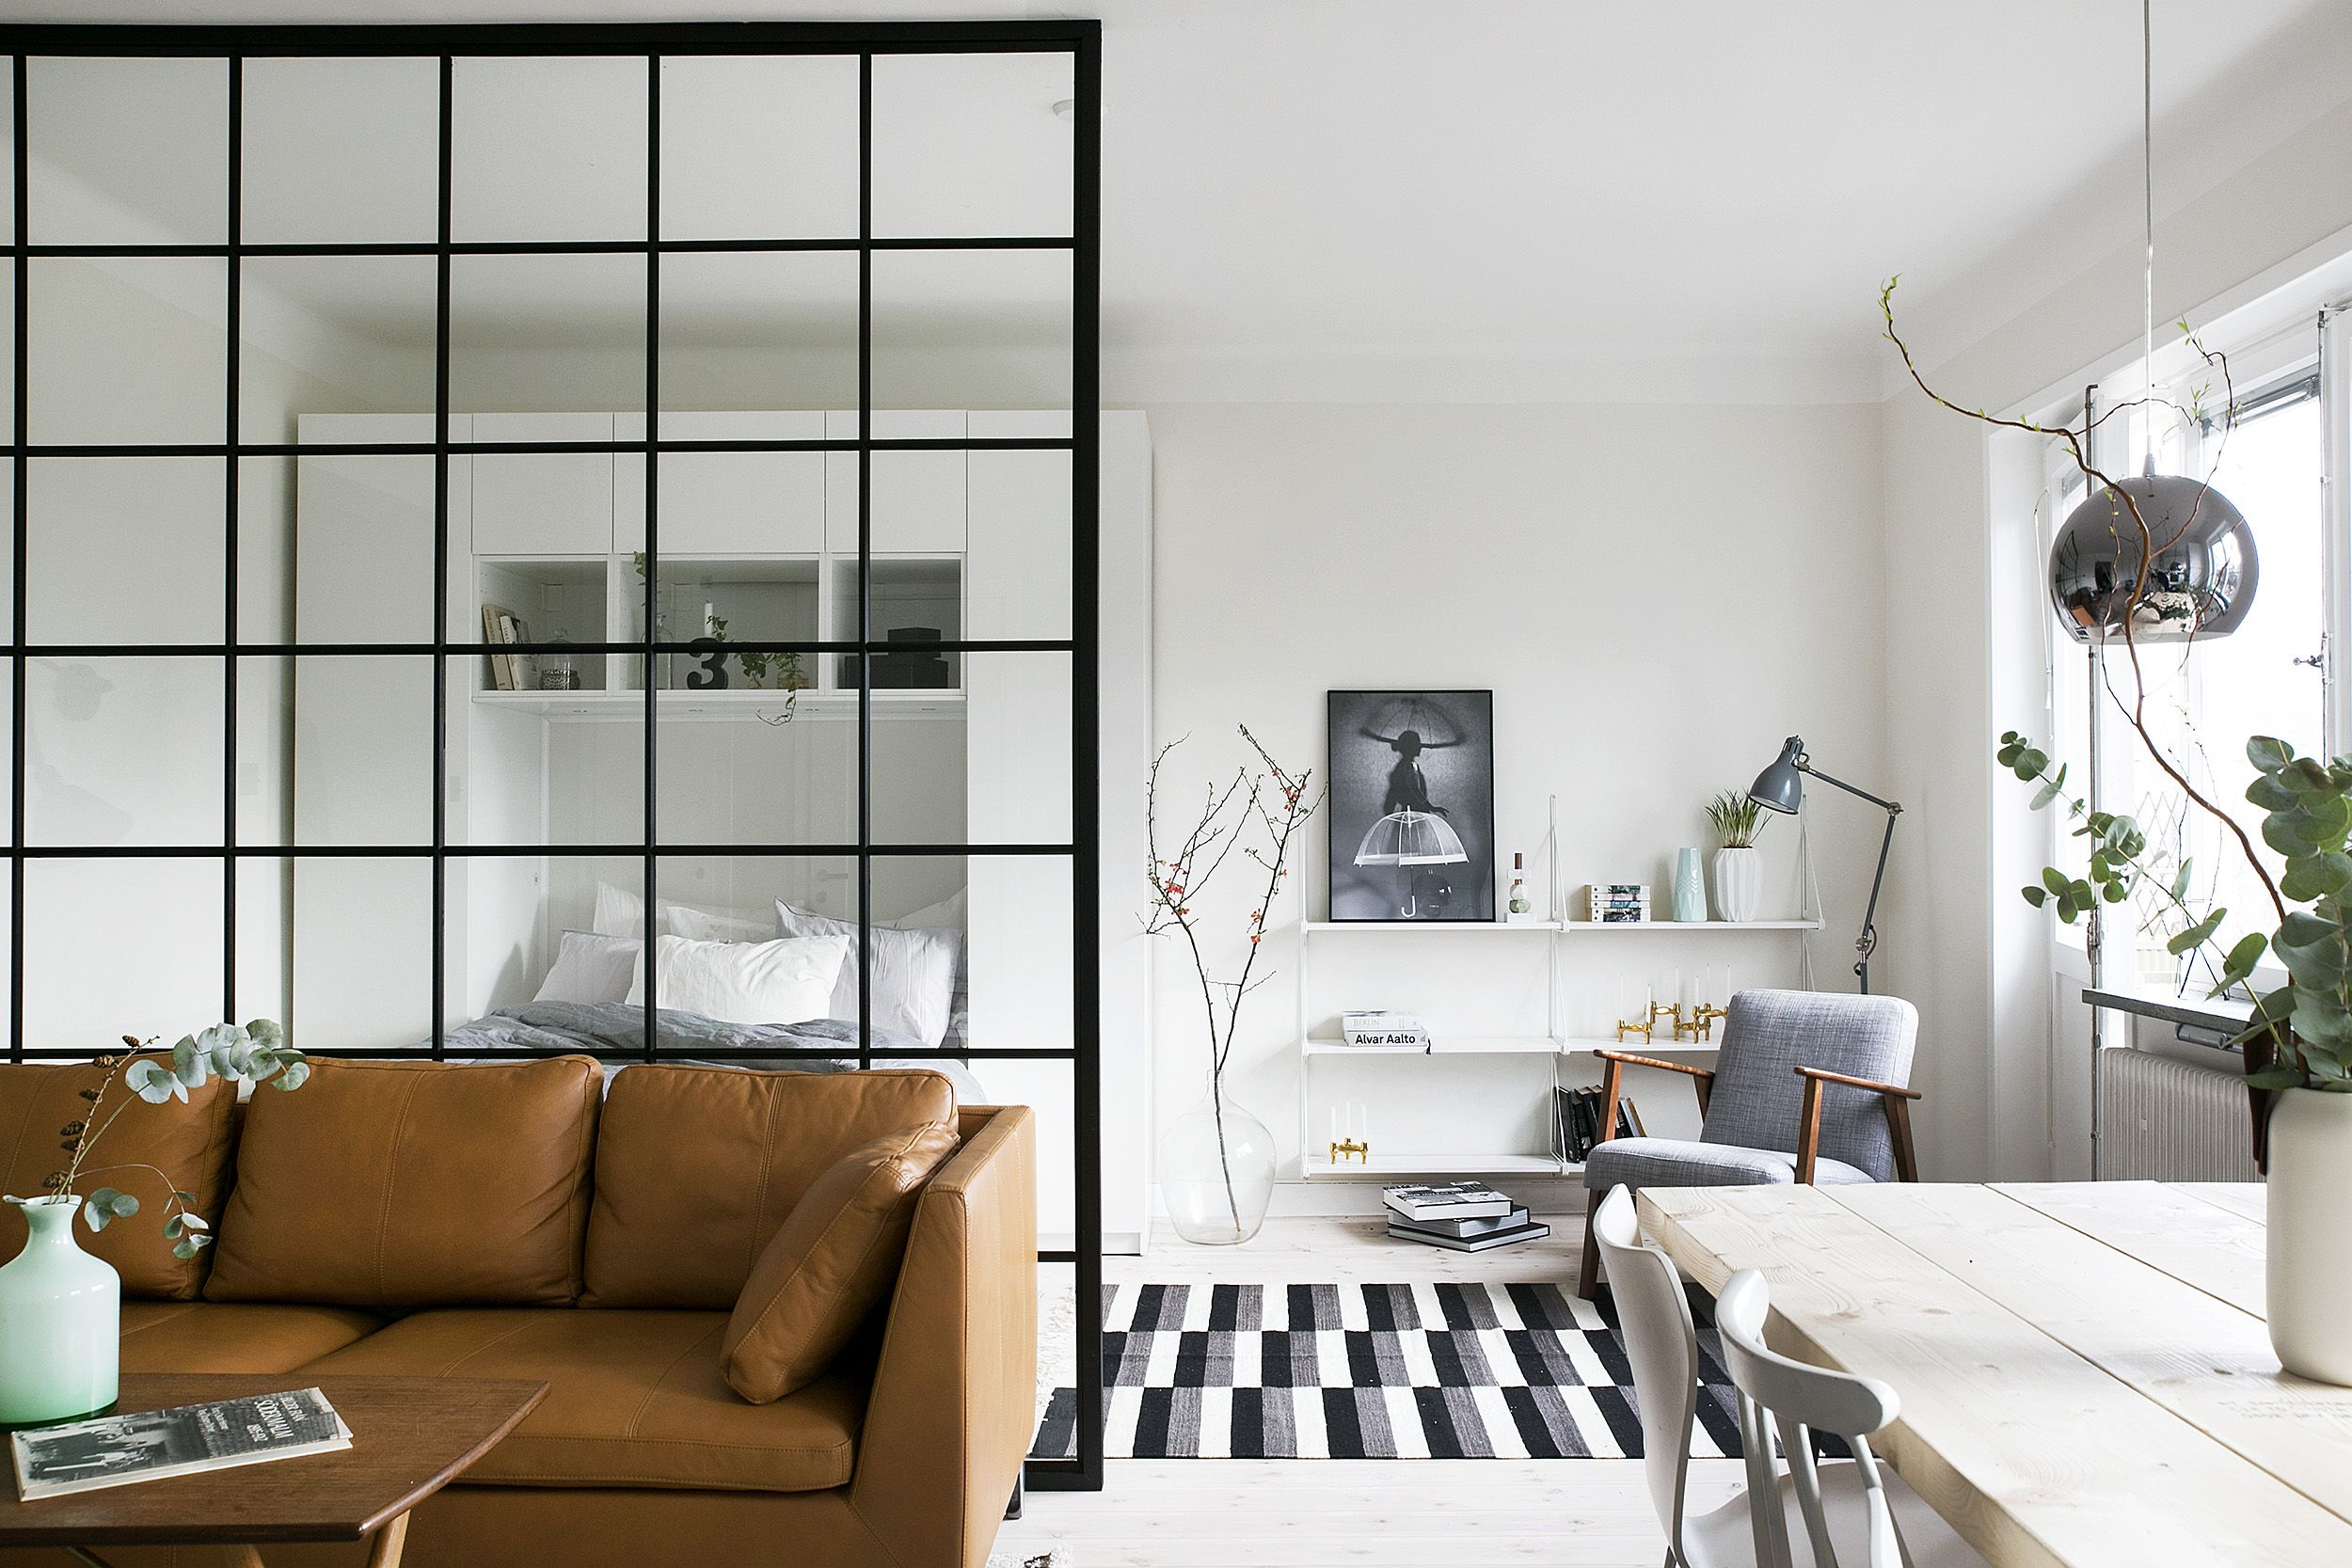 9 Amazing Interior Design Ideas That You   Can Easily Use In Your Home